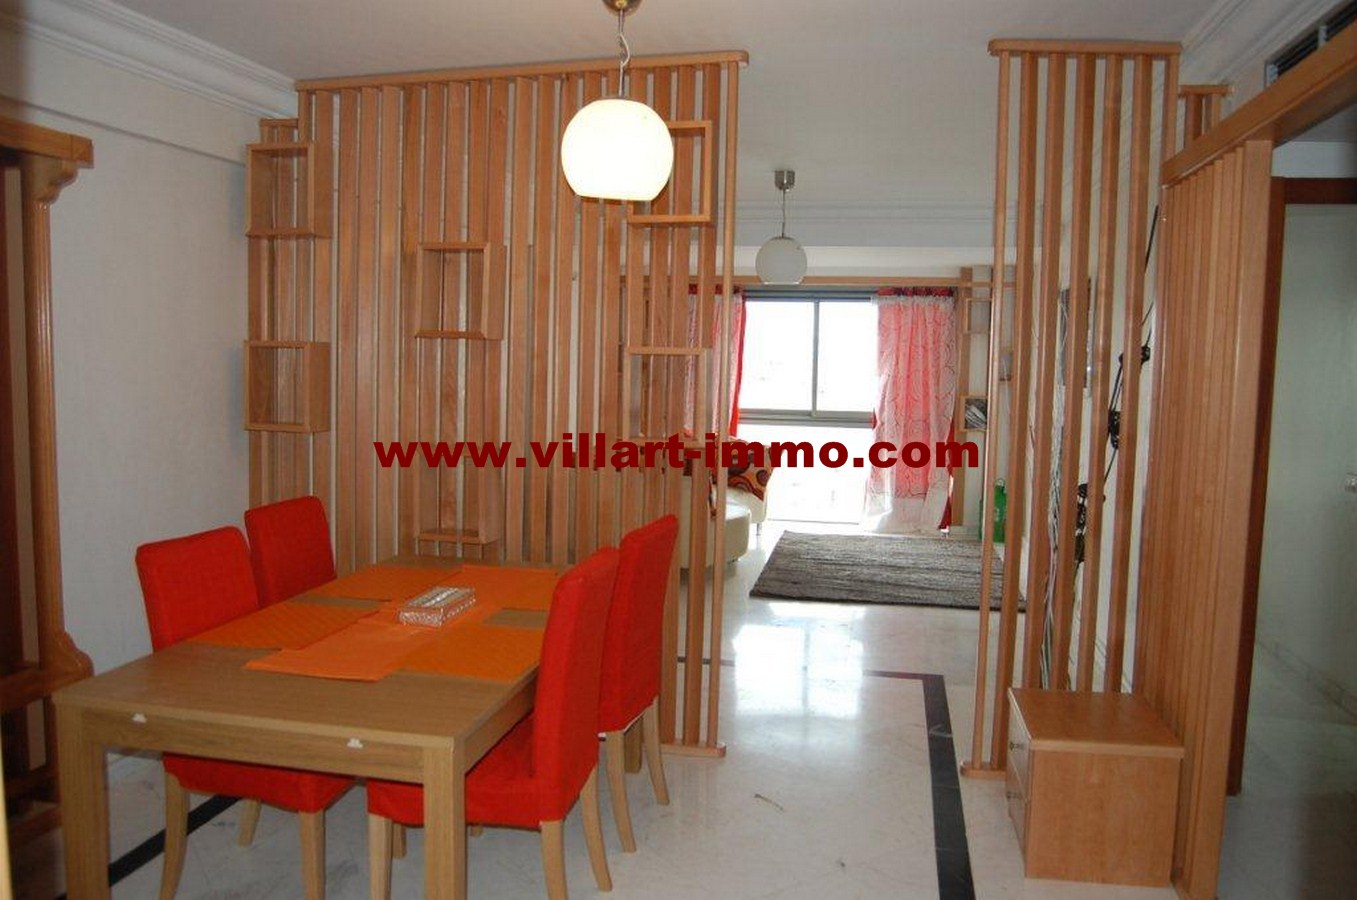 1-vente-appartement-tanger-centre-salon-1-va456-villart-immo